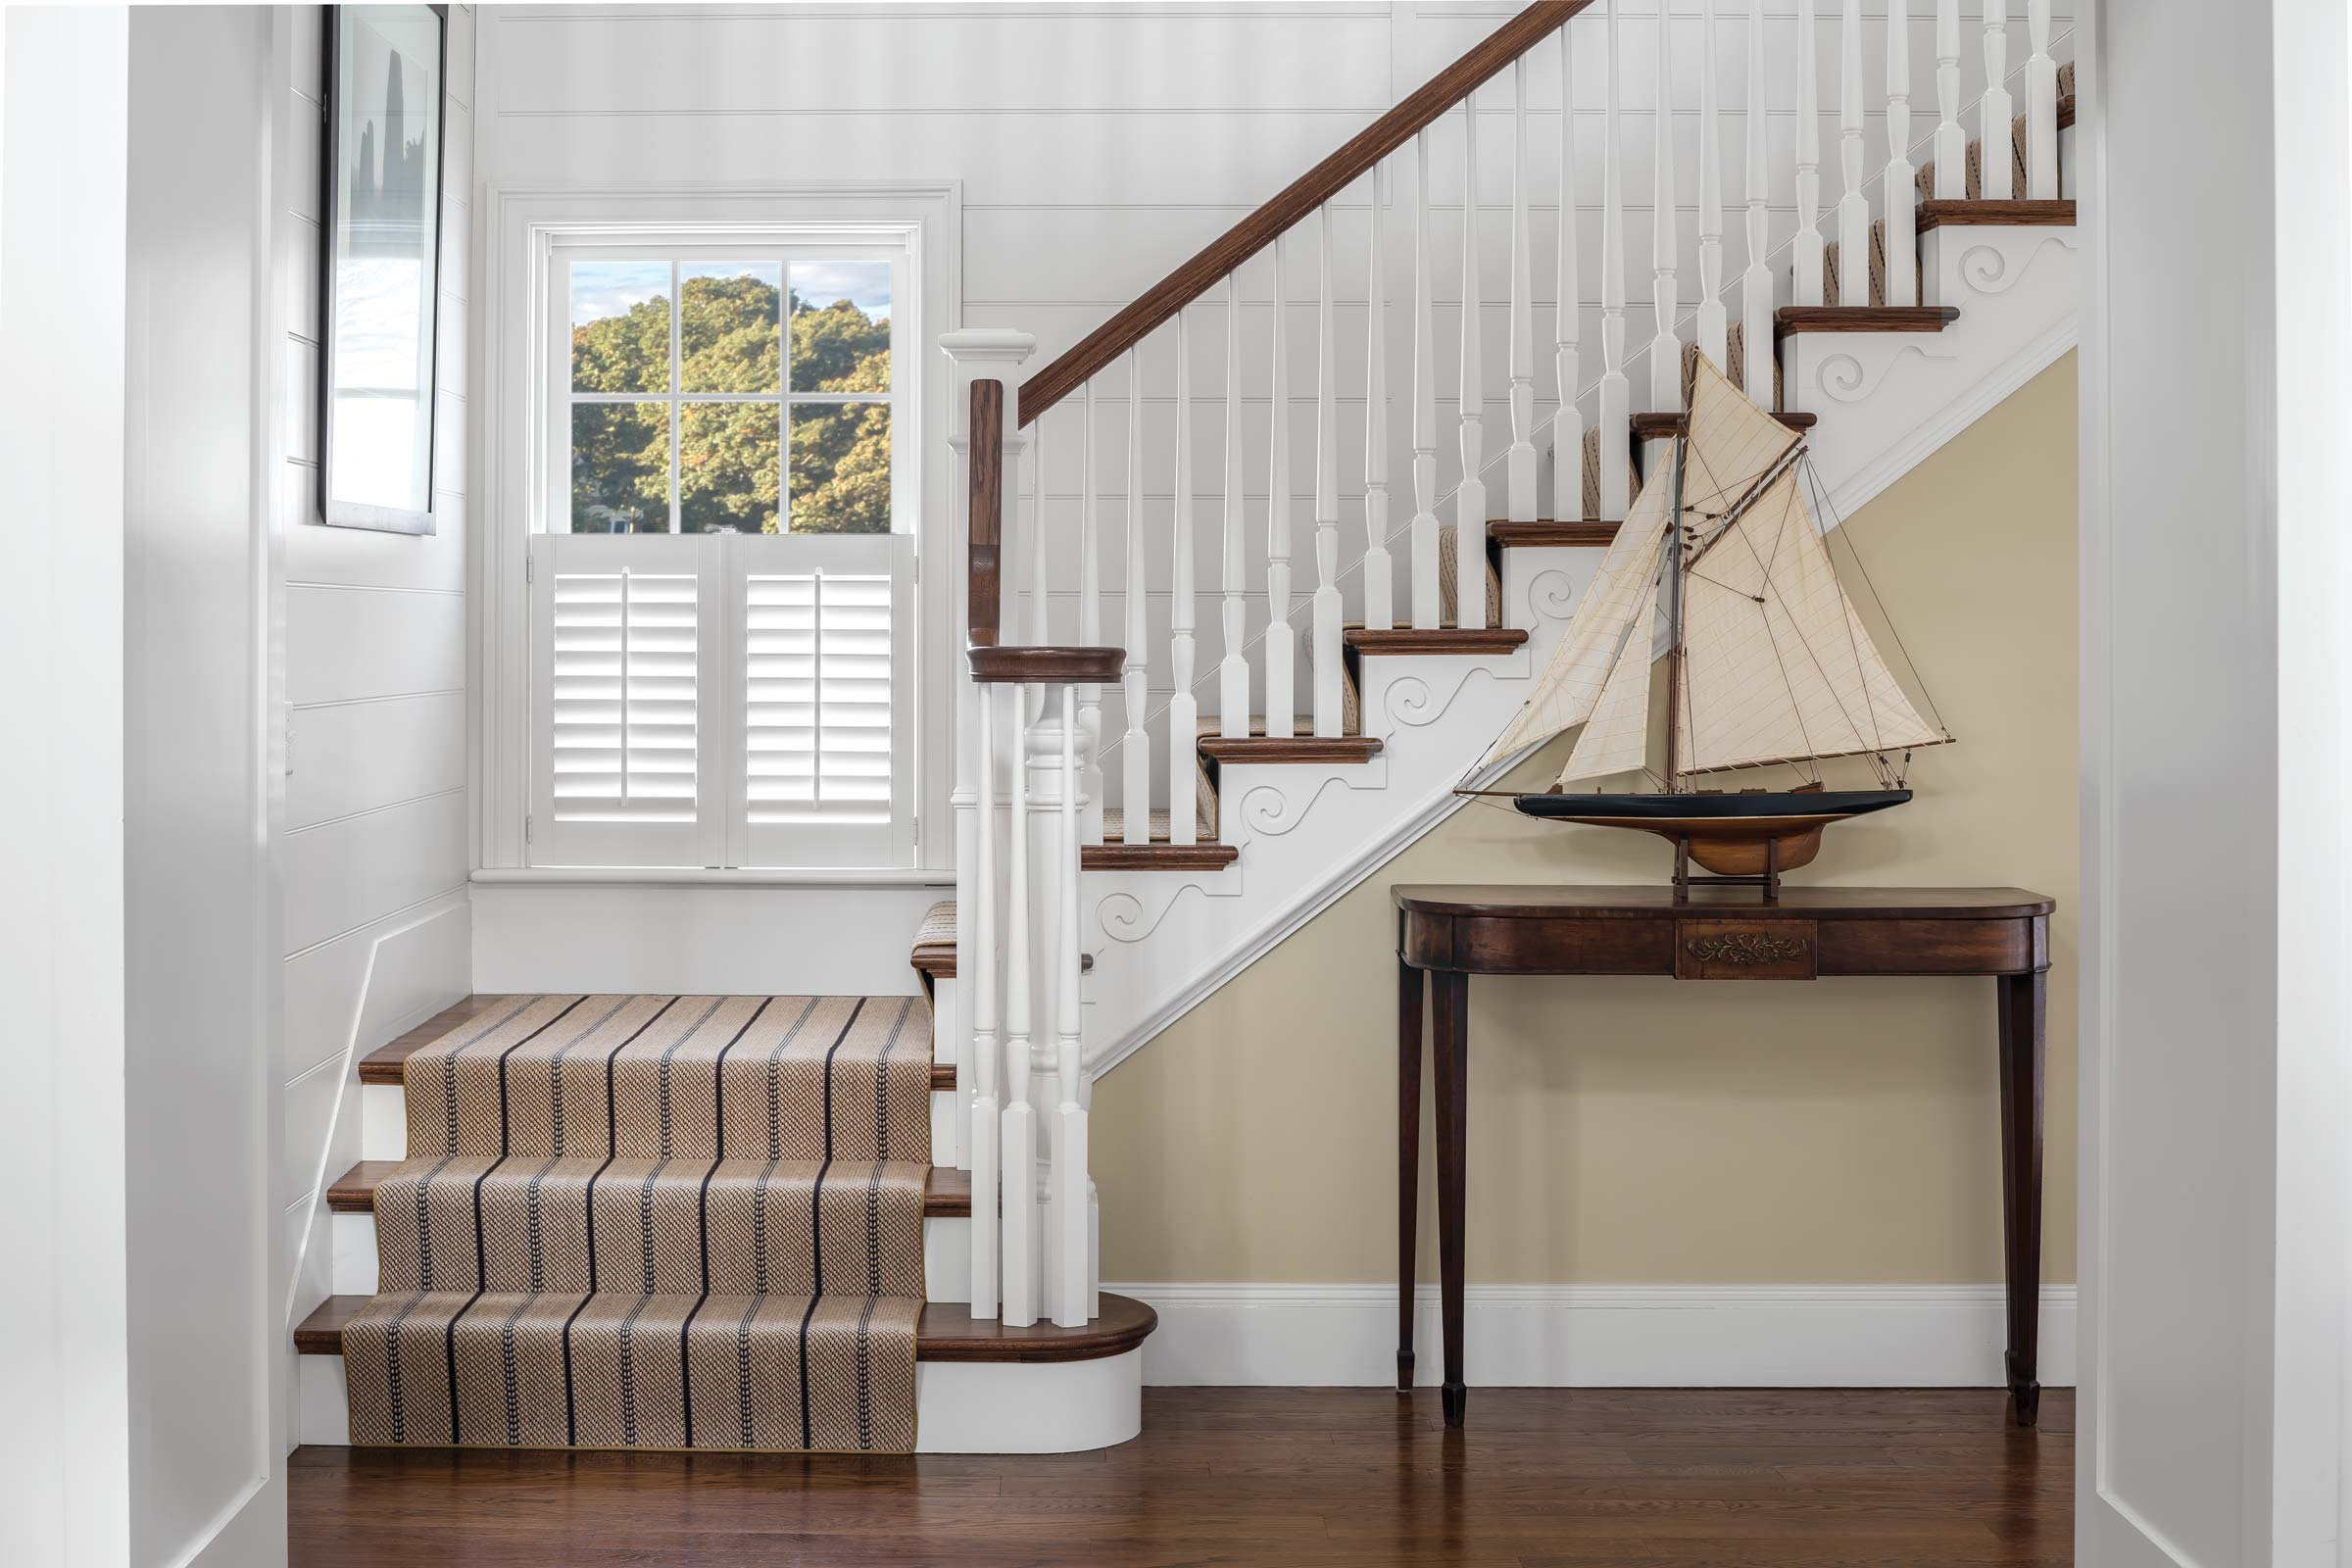 The KA schooner model displayed in the hall interplays with the undulant wave-like molding that runs along the staircase crafted by Brian Sleeper of Period Restoration.